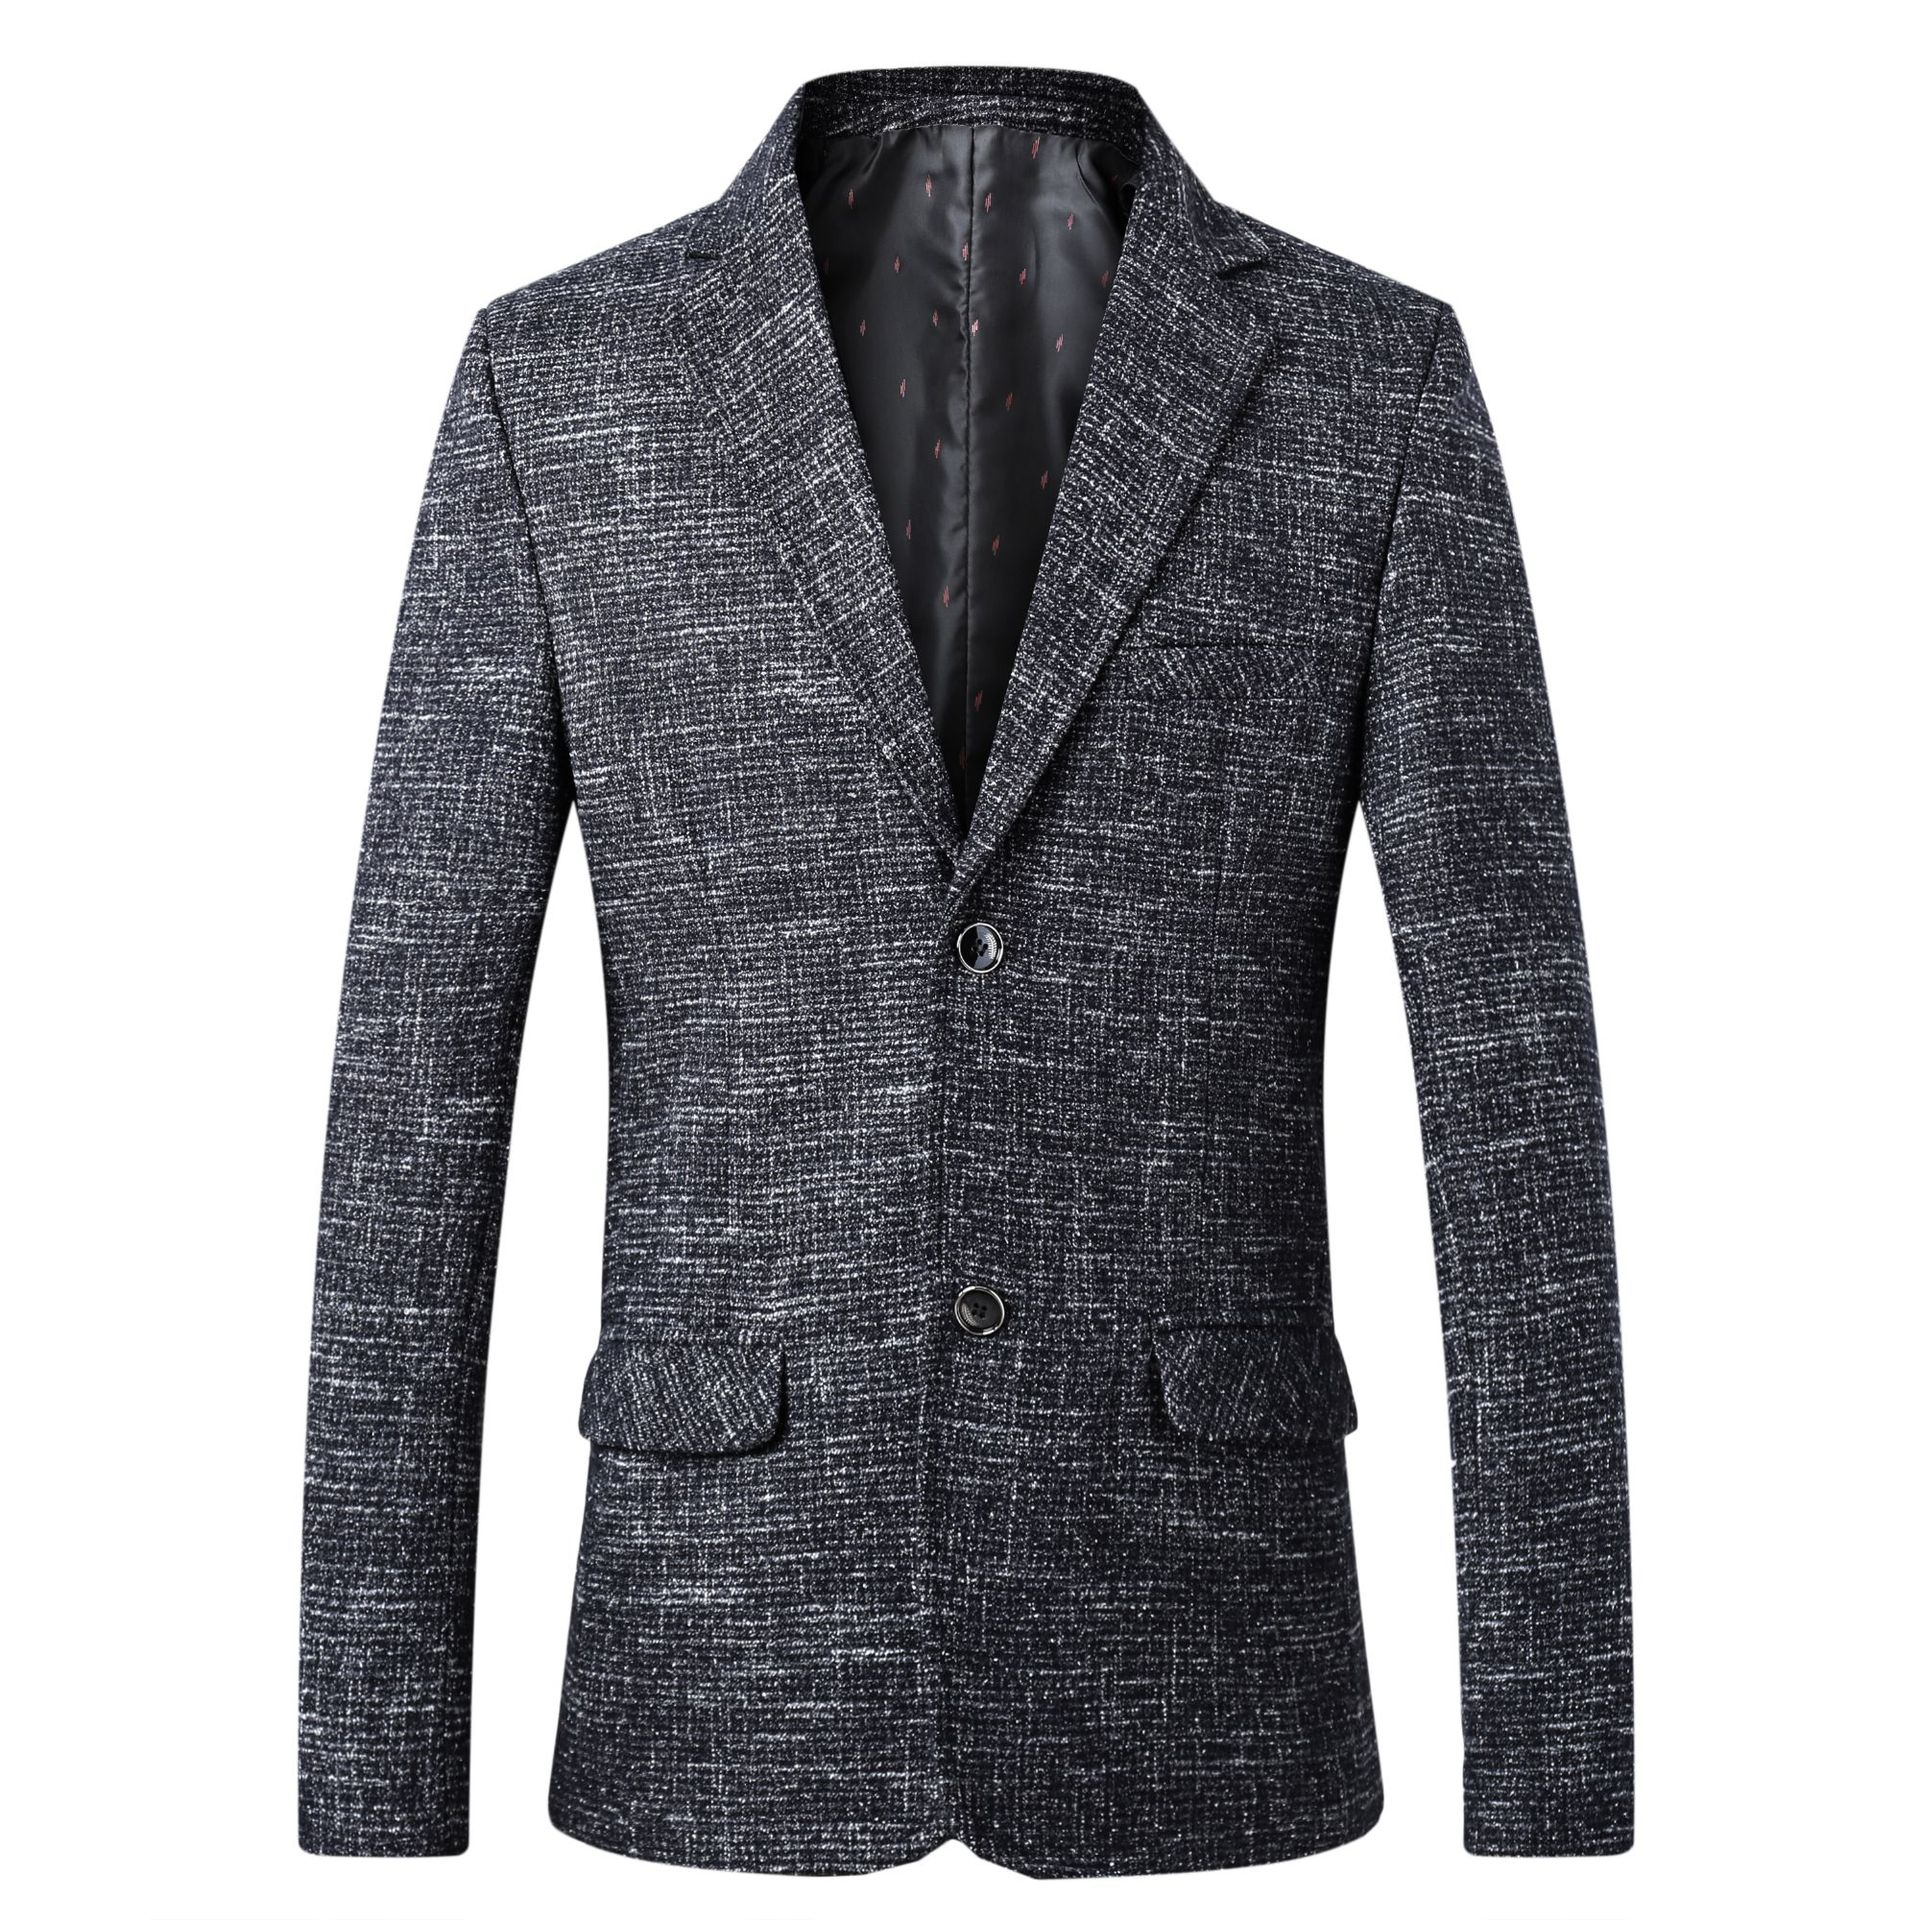 The New Men's 2019 Youth Fall Double Single Suit Suit Leisure Suit